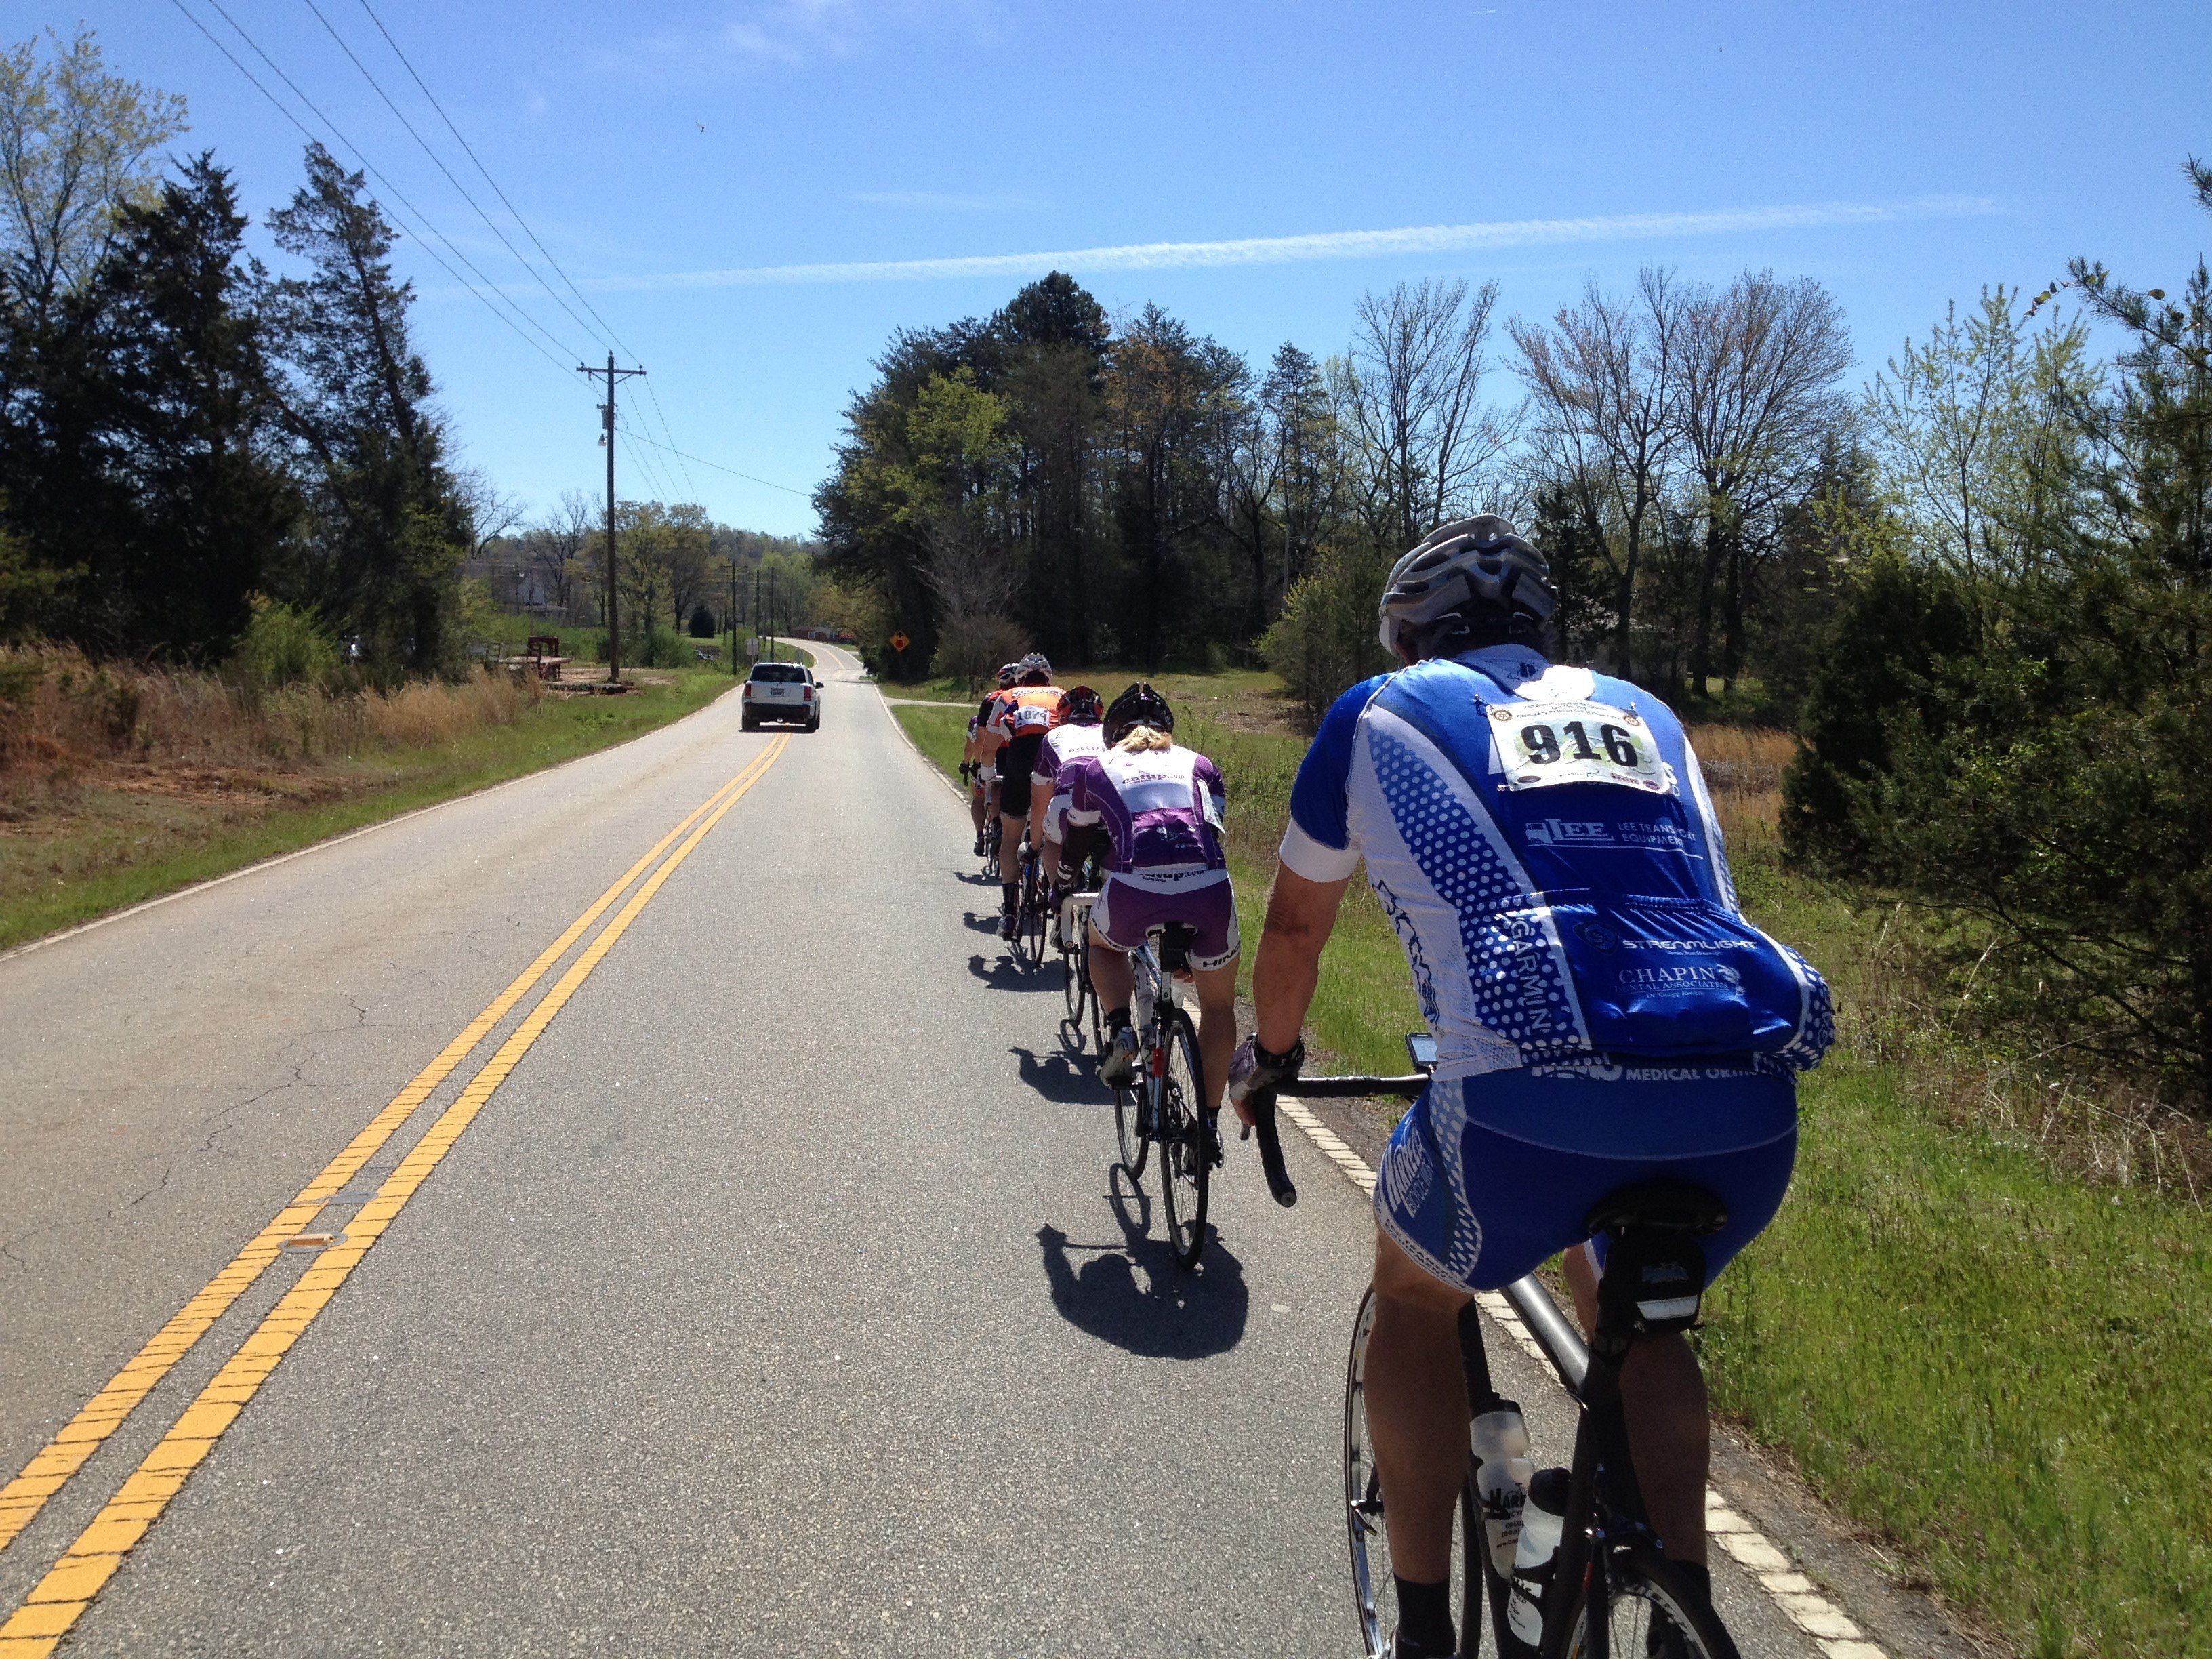 Cyclists riding on road at cycling camp